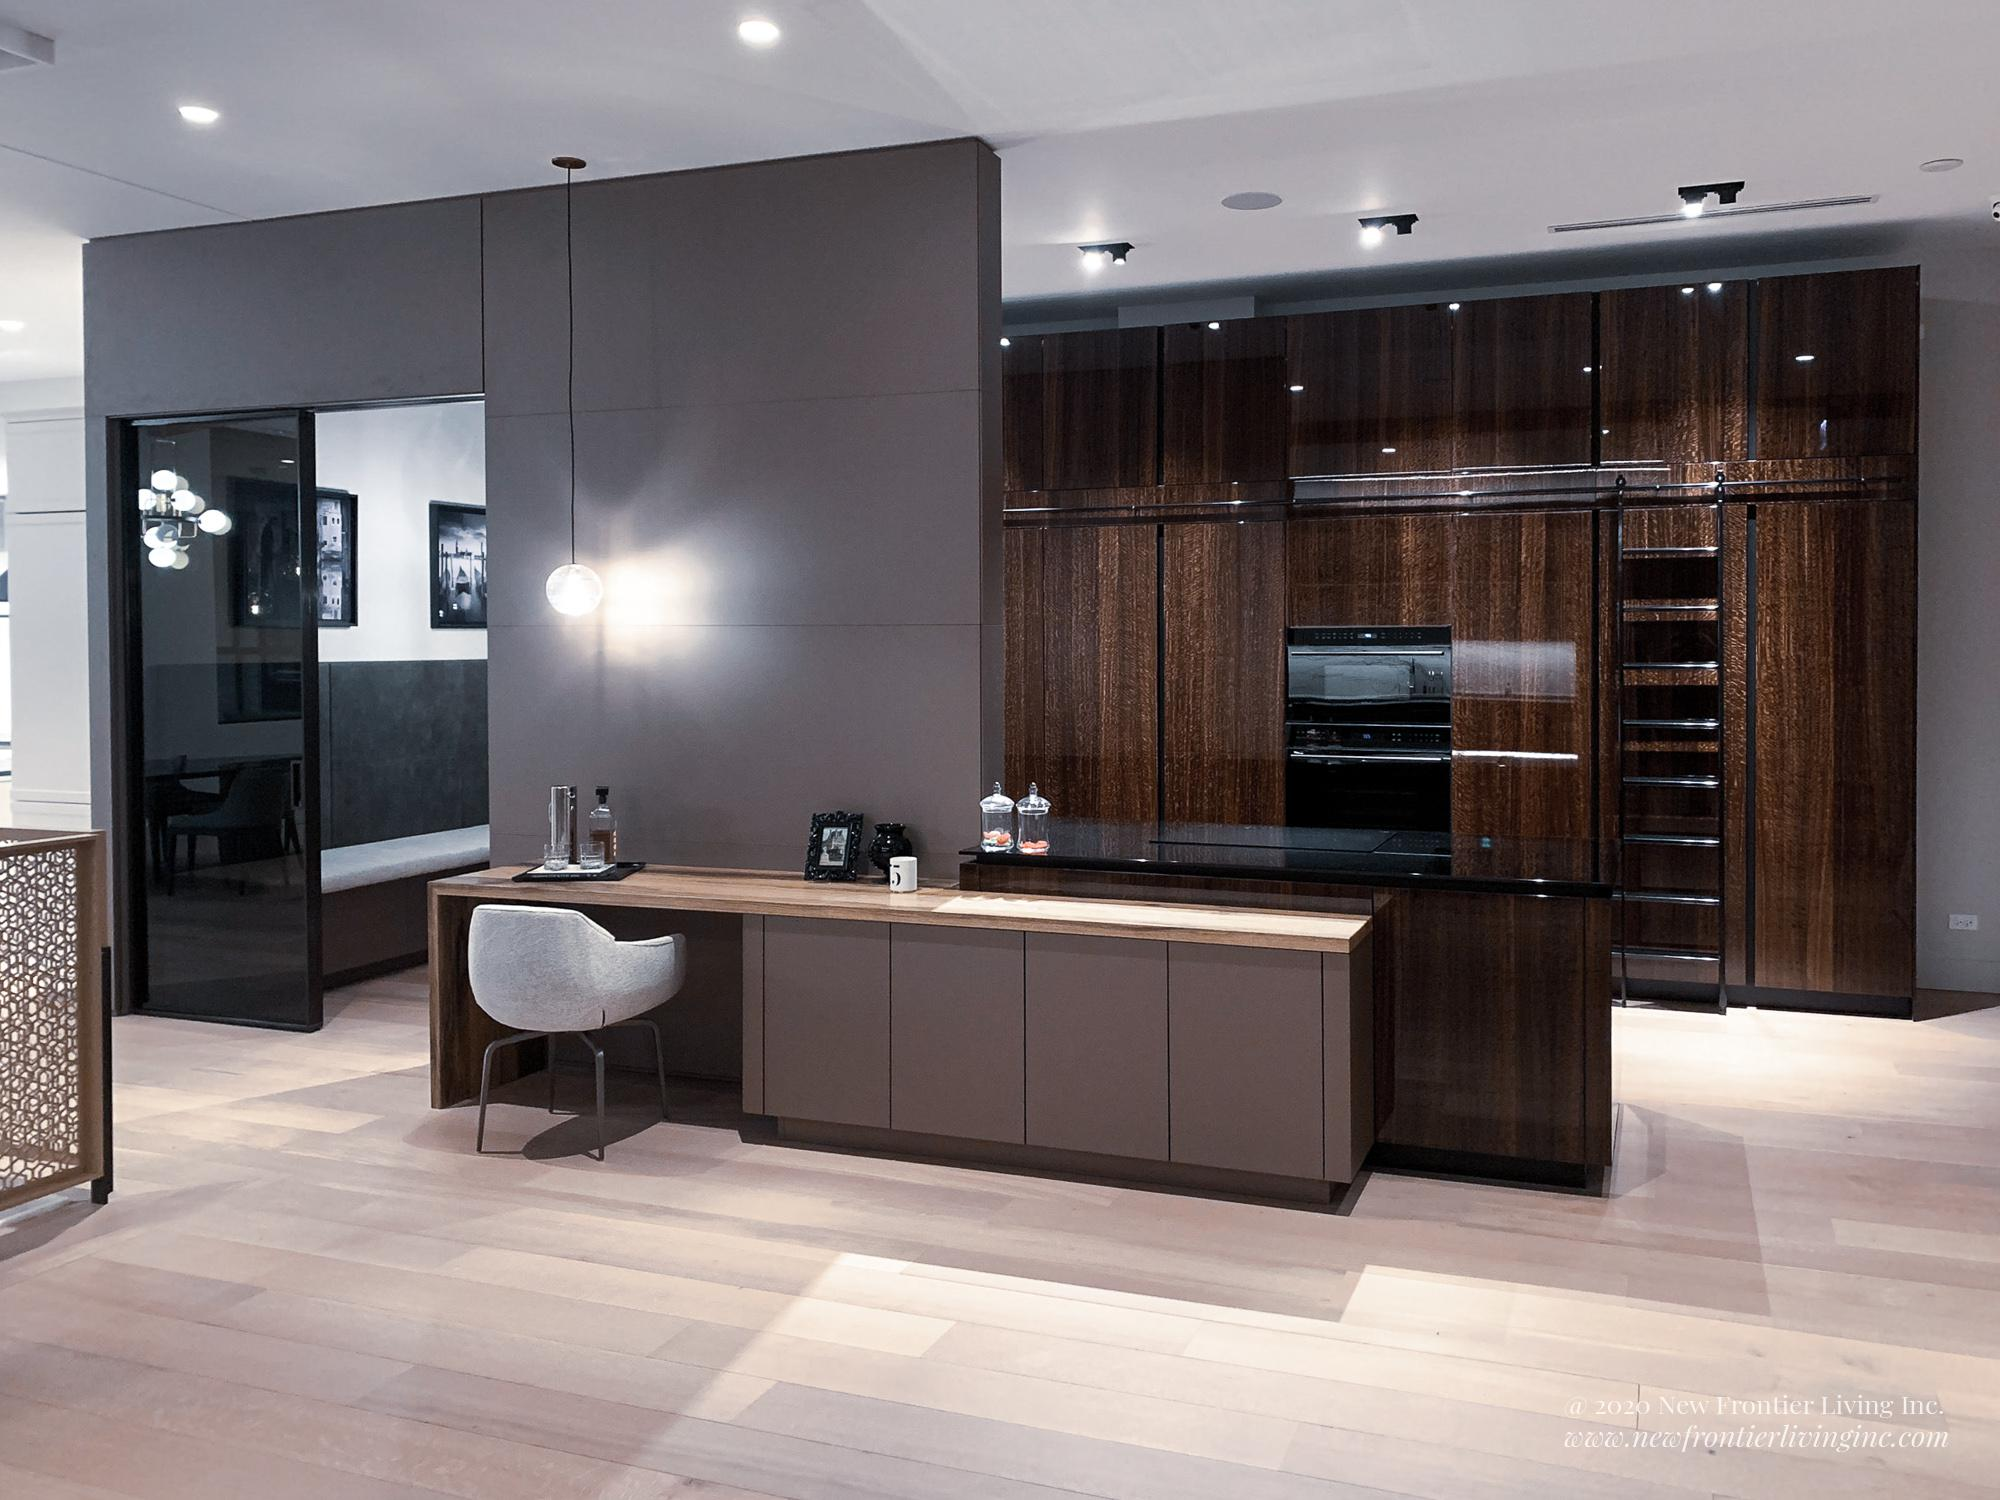 Brown glossy kitchen with a sliding ladder, chair and desk on other side